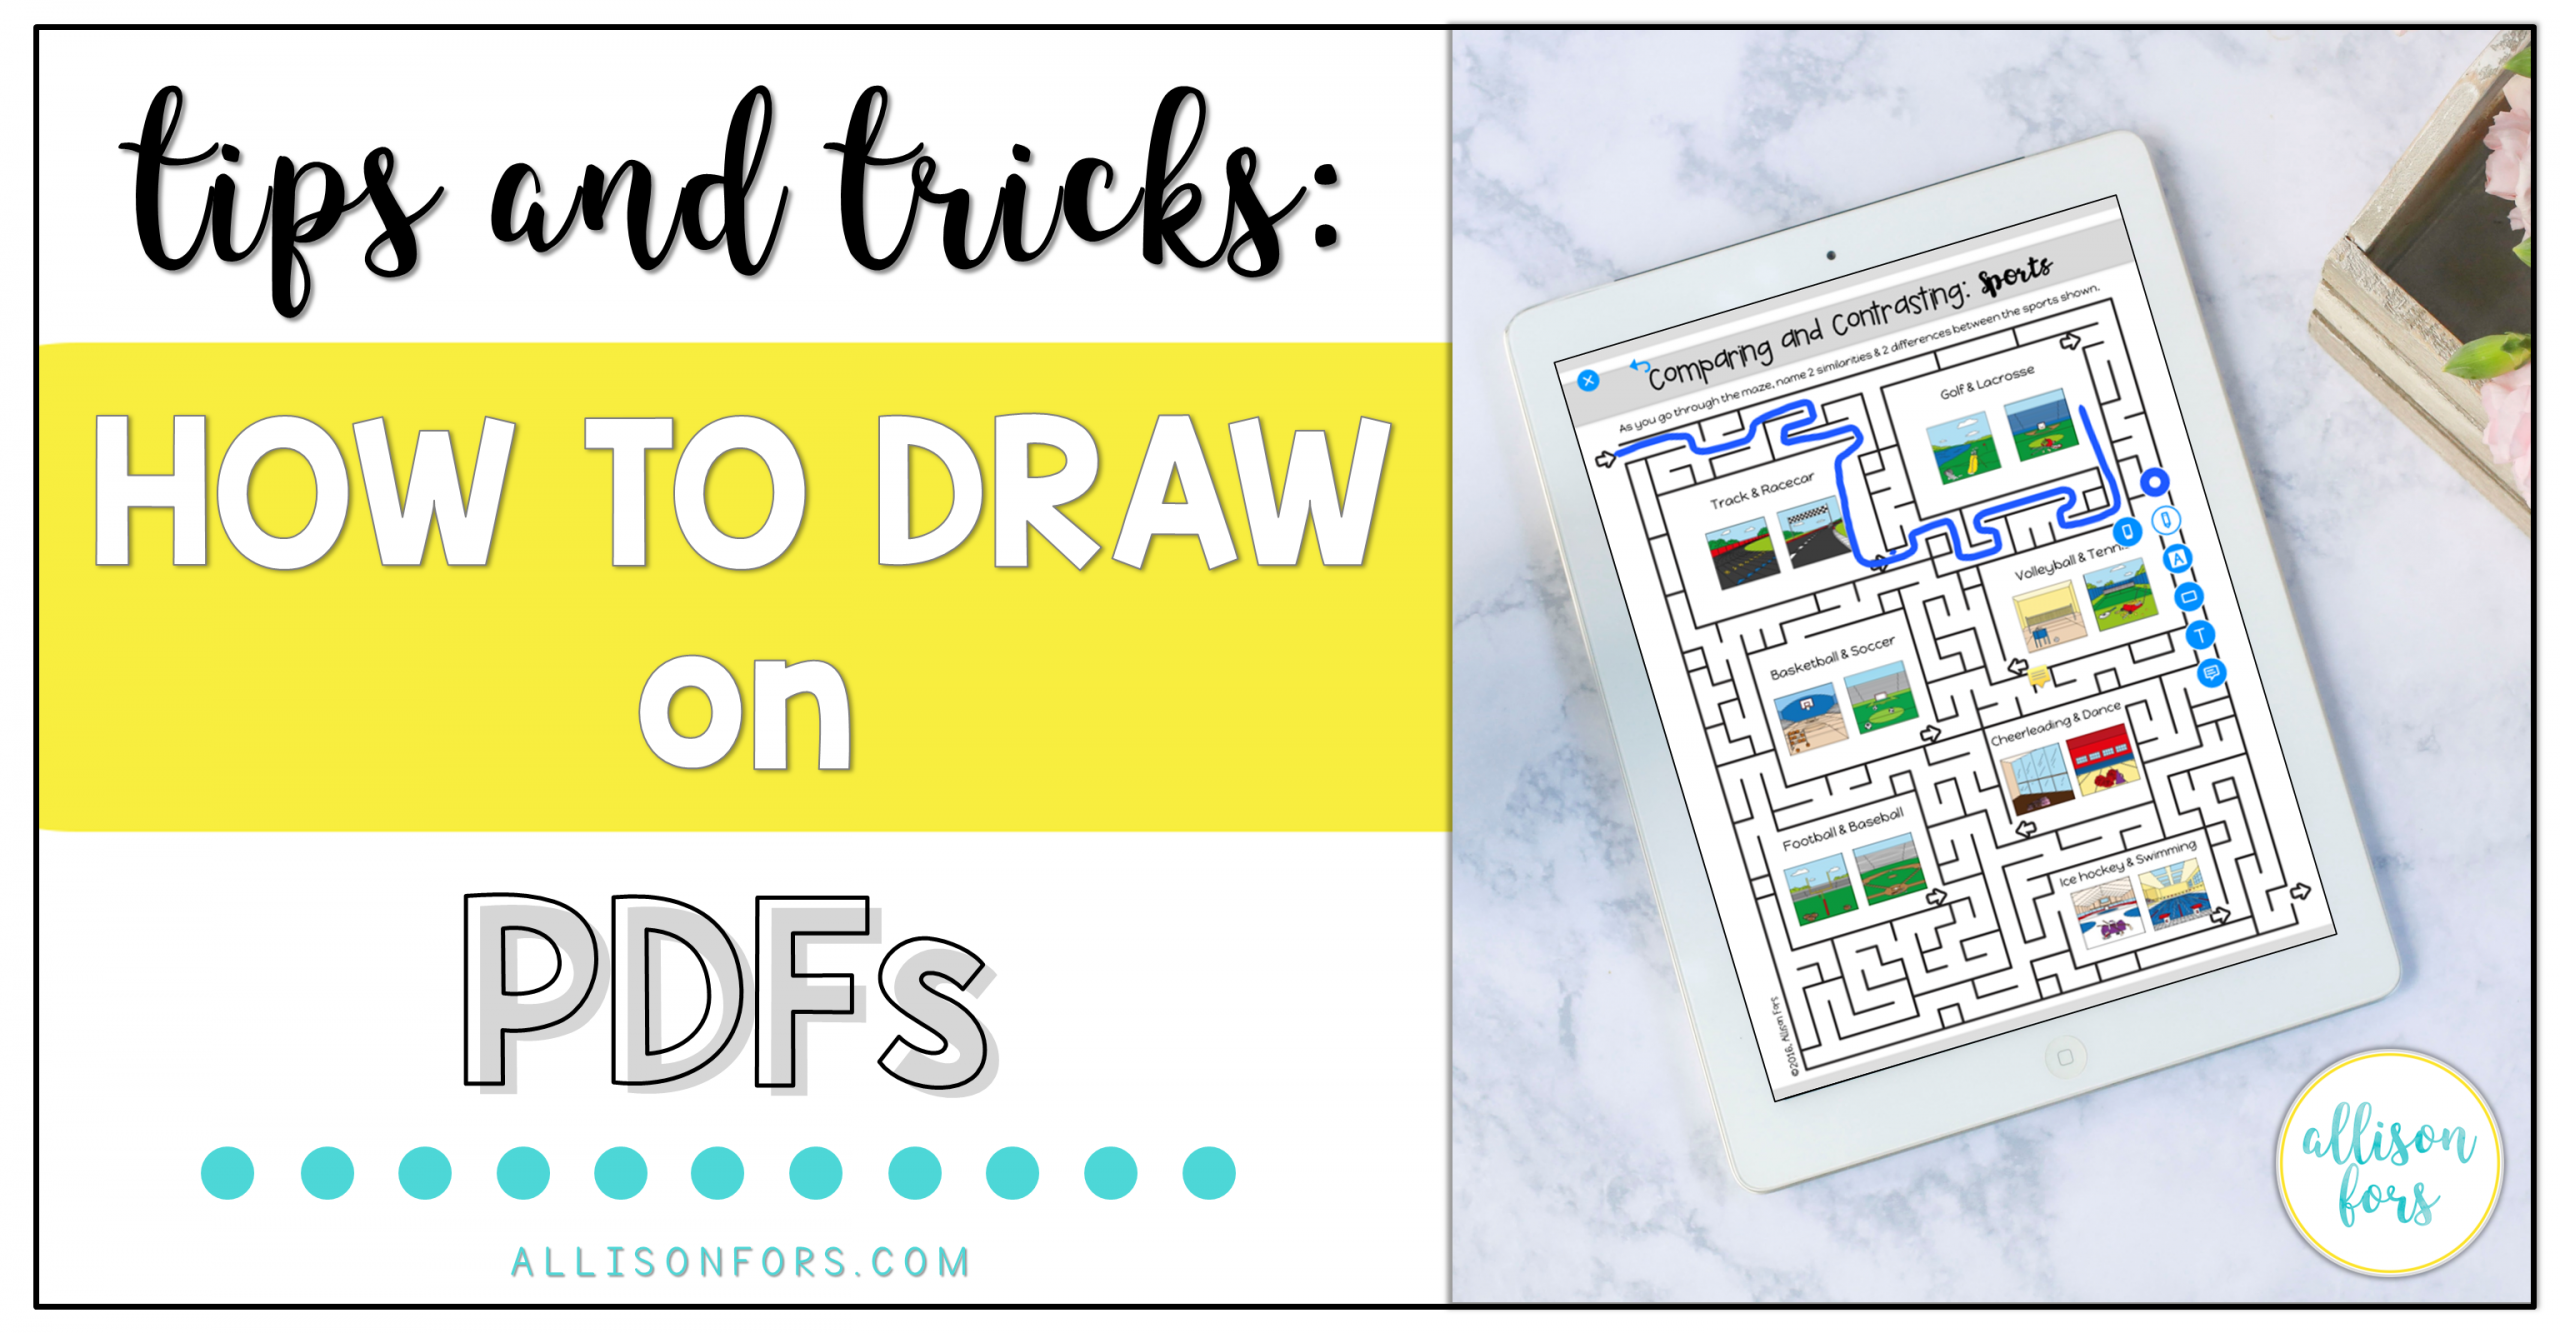 Tips and Tricks: How to Draw on PDFs